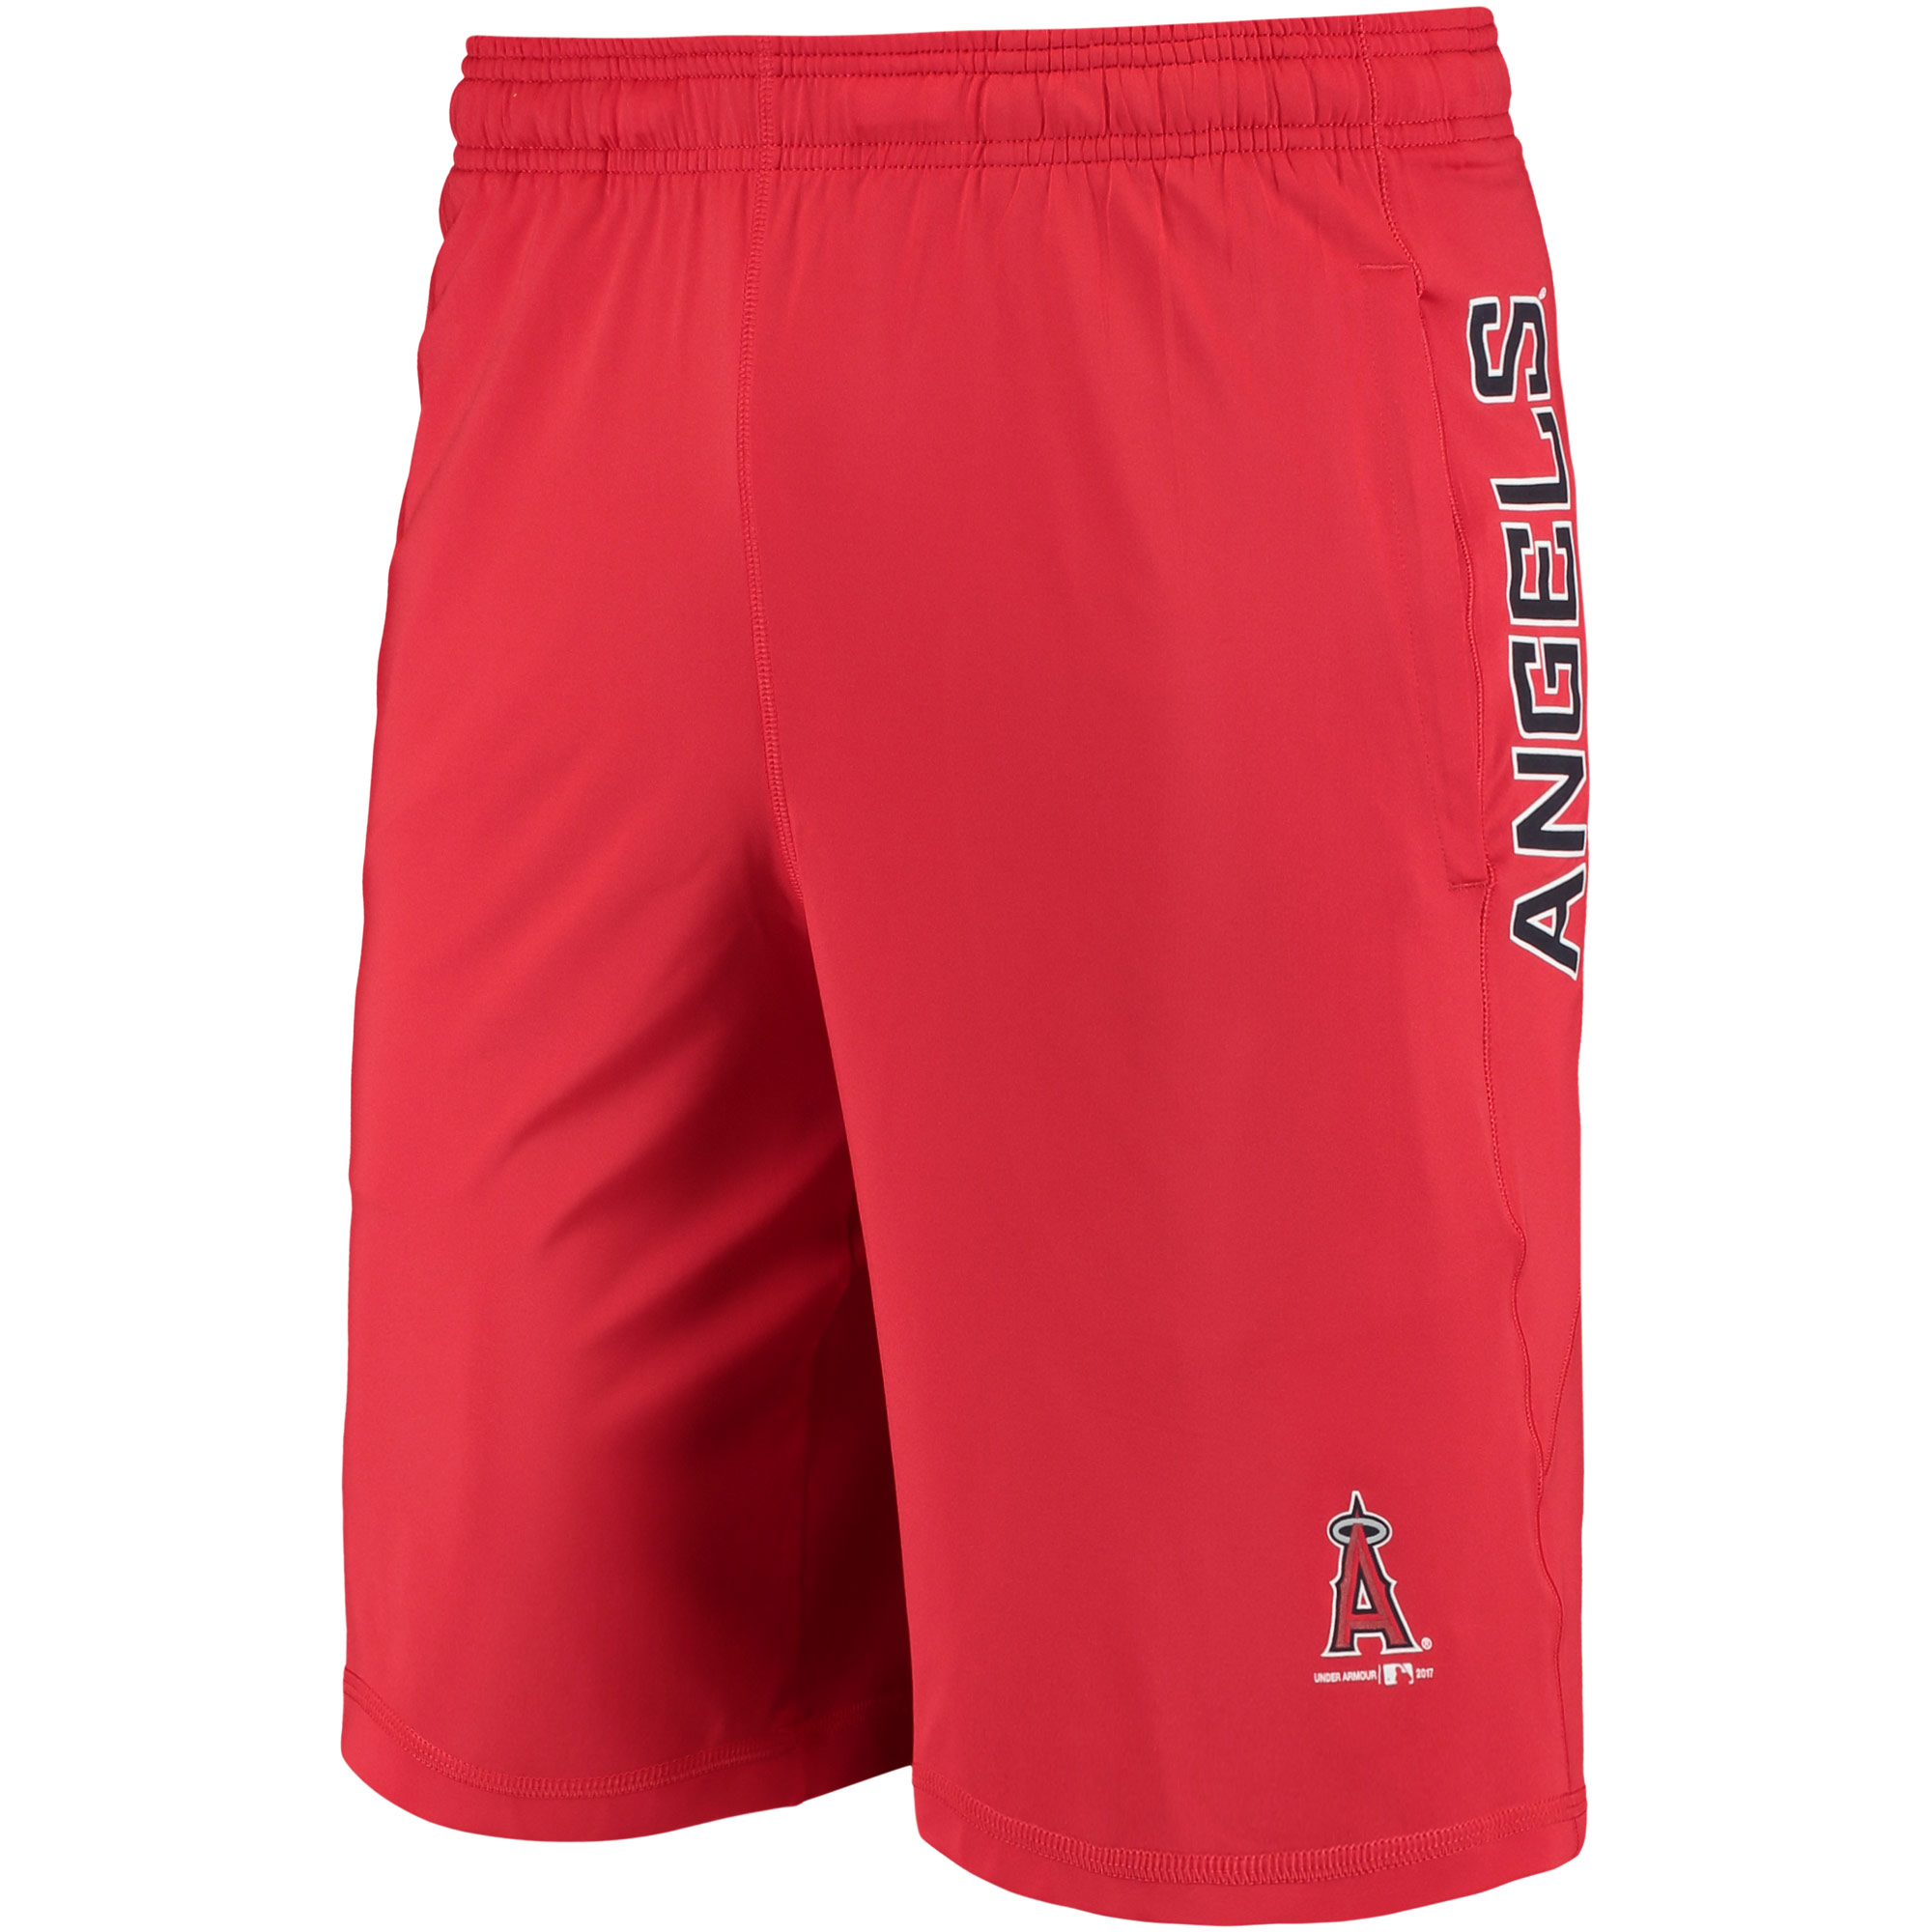 Los Angeles Angels Under Armour Raid Solid Shorts - Red